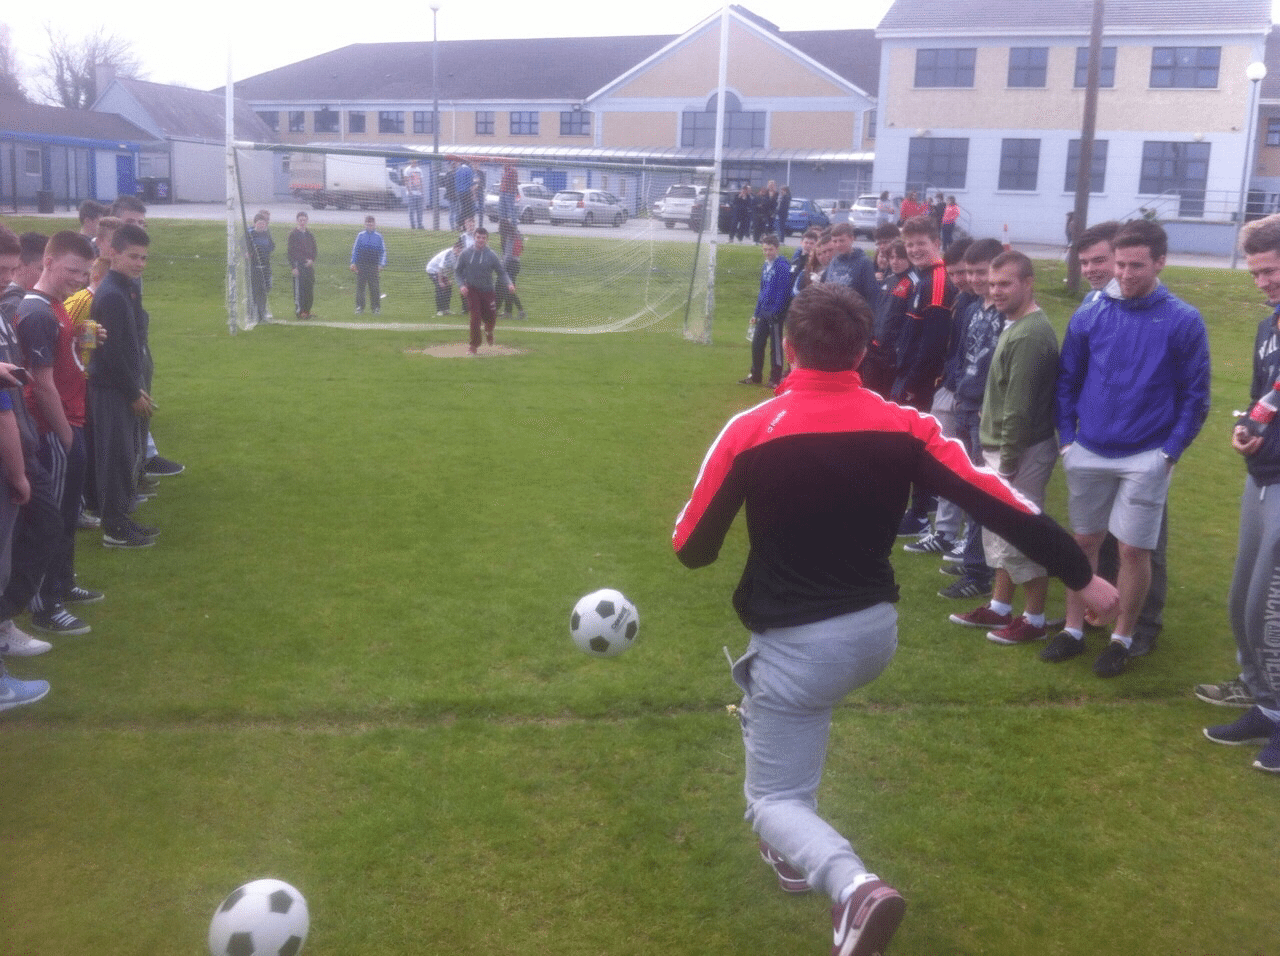 Action Shot from the Penalty Shoot Out at Desmond College Active Schools Week